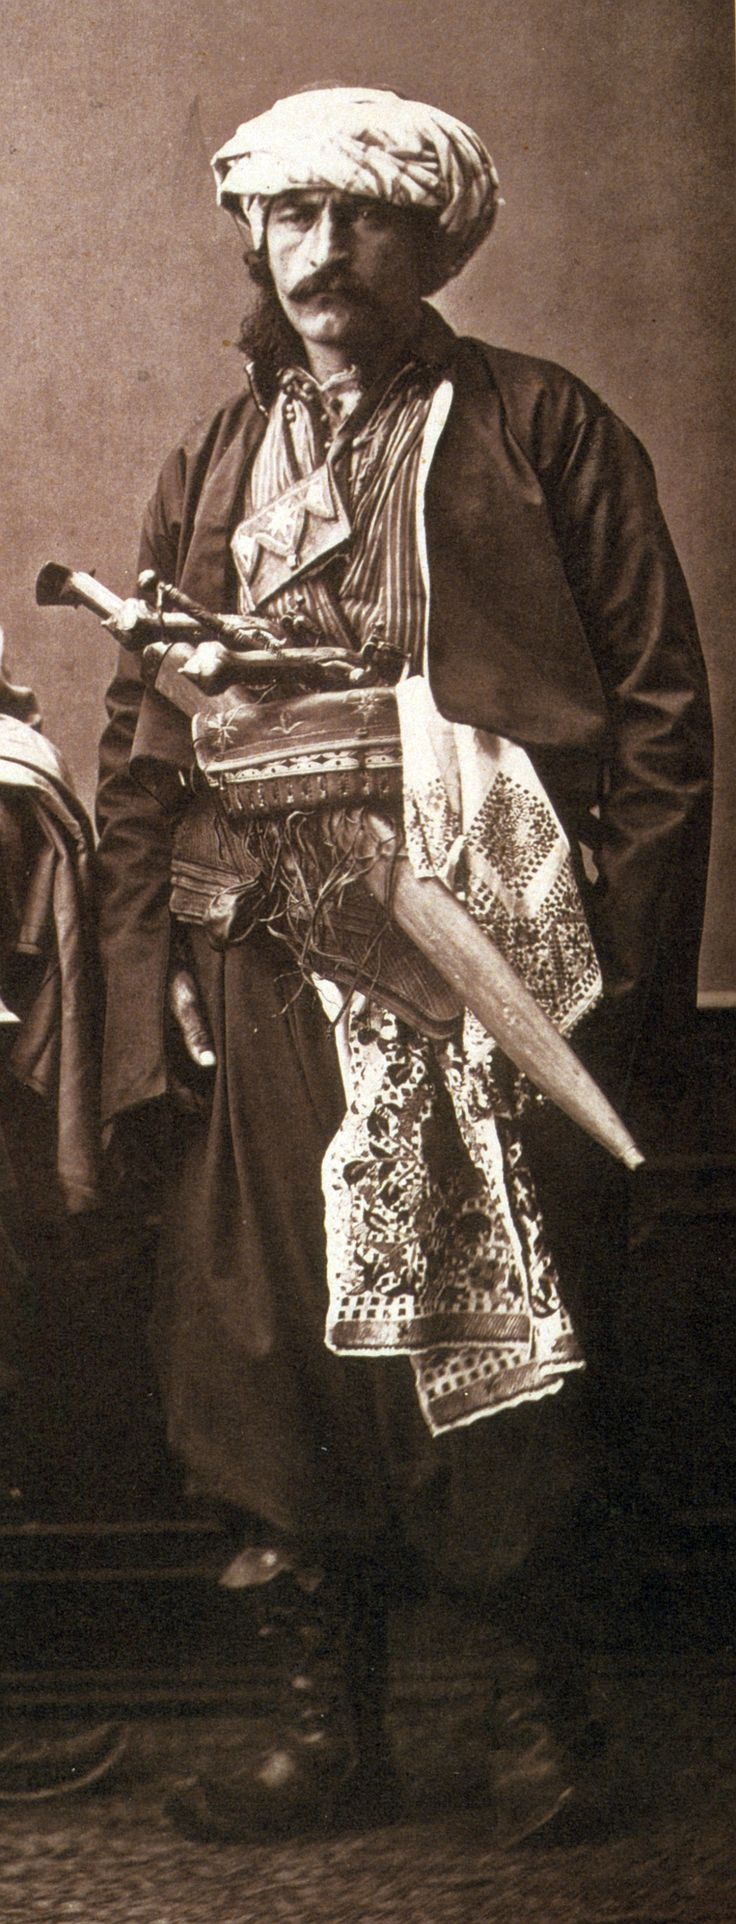 "Ottoman cavalry from Koniah, voluntary auxiliaries used concurrently with the Zaptîes (gendarmes) as escorts to authorities, pilgrims, travelers, to carry orders, to protect convoys of goods. Shown with a silahlik (weapons belt) holding a large yatagan and two pistols (kuber) in a holster (kuberluk). From:Les costumes populaires de la Turquie en 1873, 74 photographic plates by Pascal Sebah, published by the Imperial Ottoman Commission for the ""Exposition Universelle"" of Vienna in 1873."